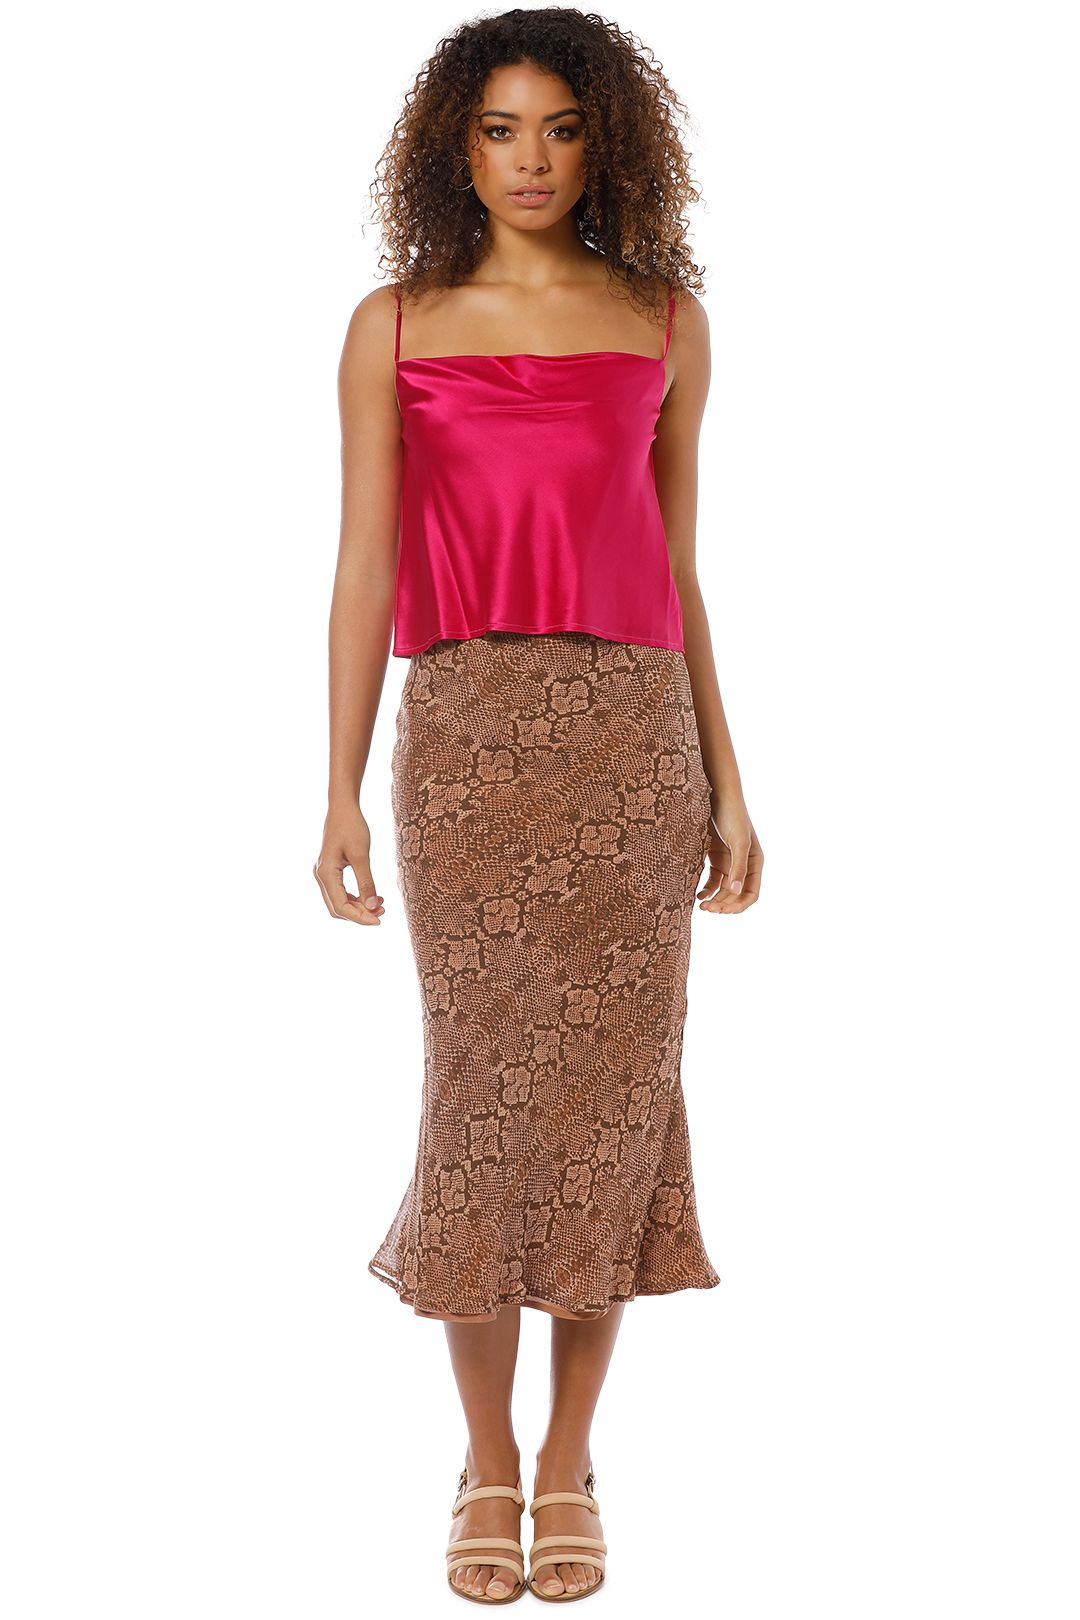 Hansen and Gretel - Elsom Skirt - Serpent - Front